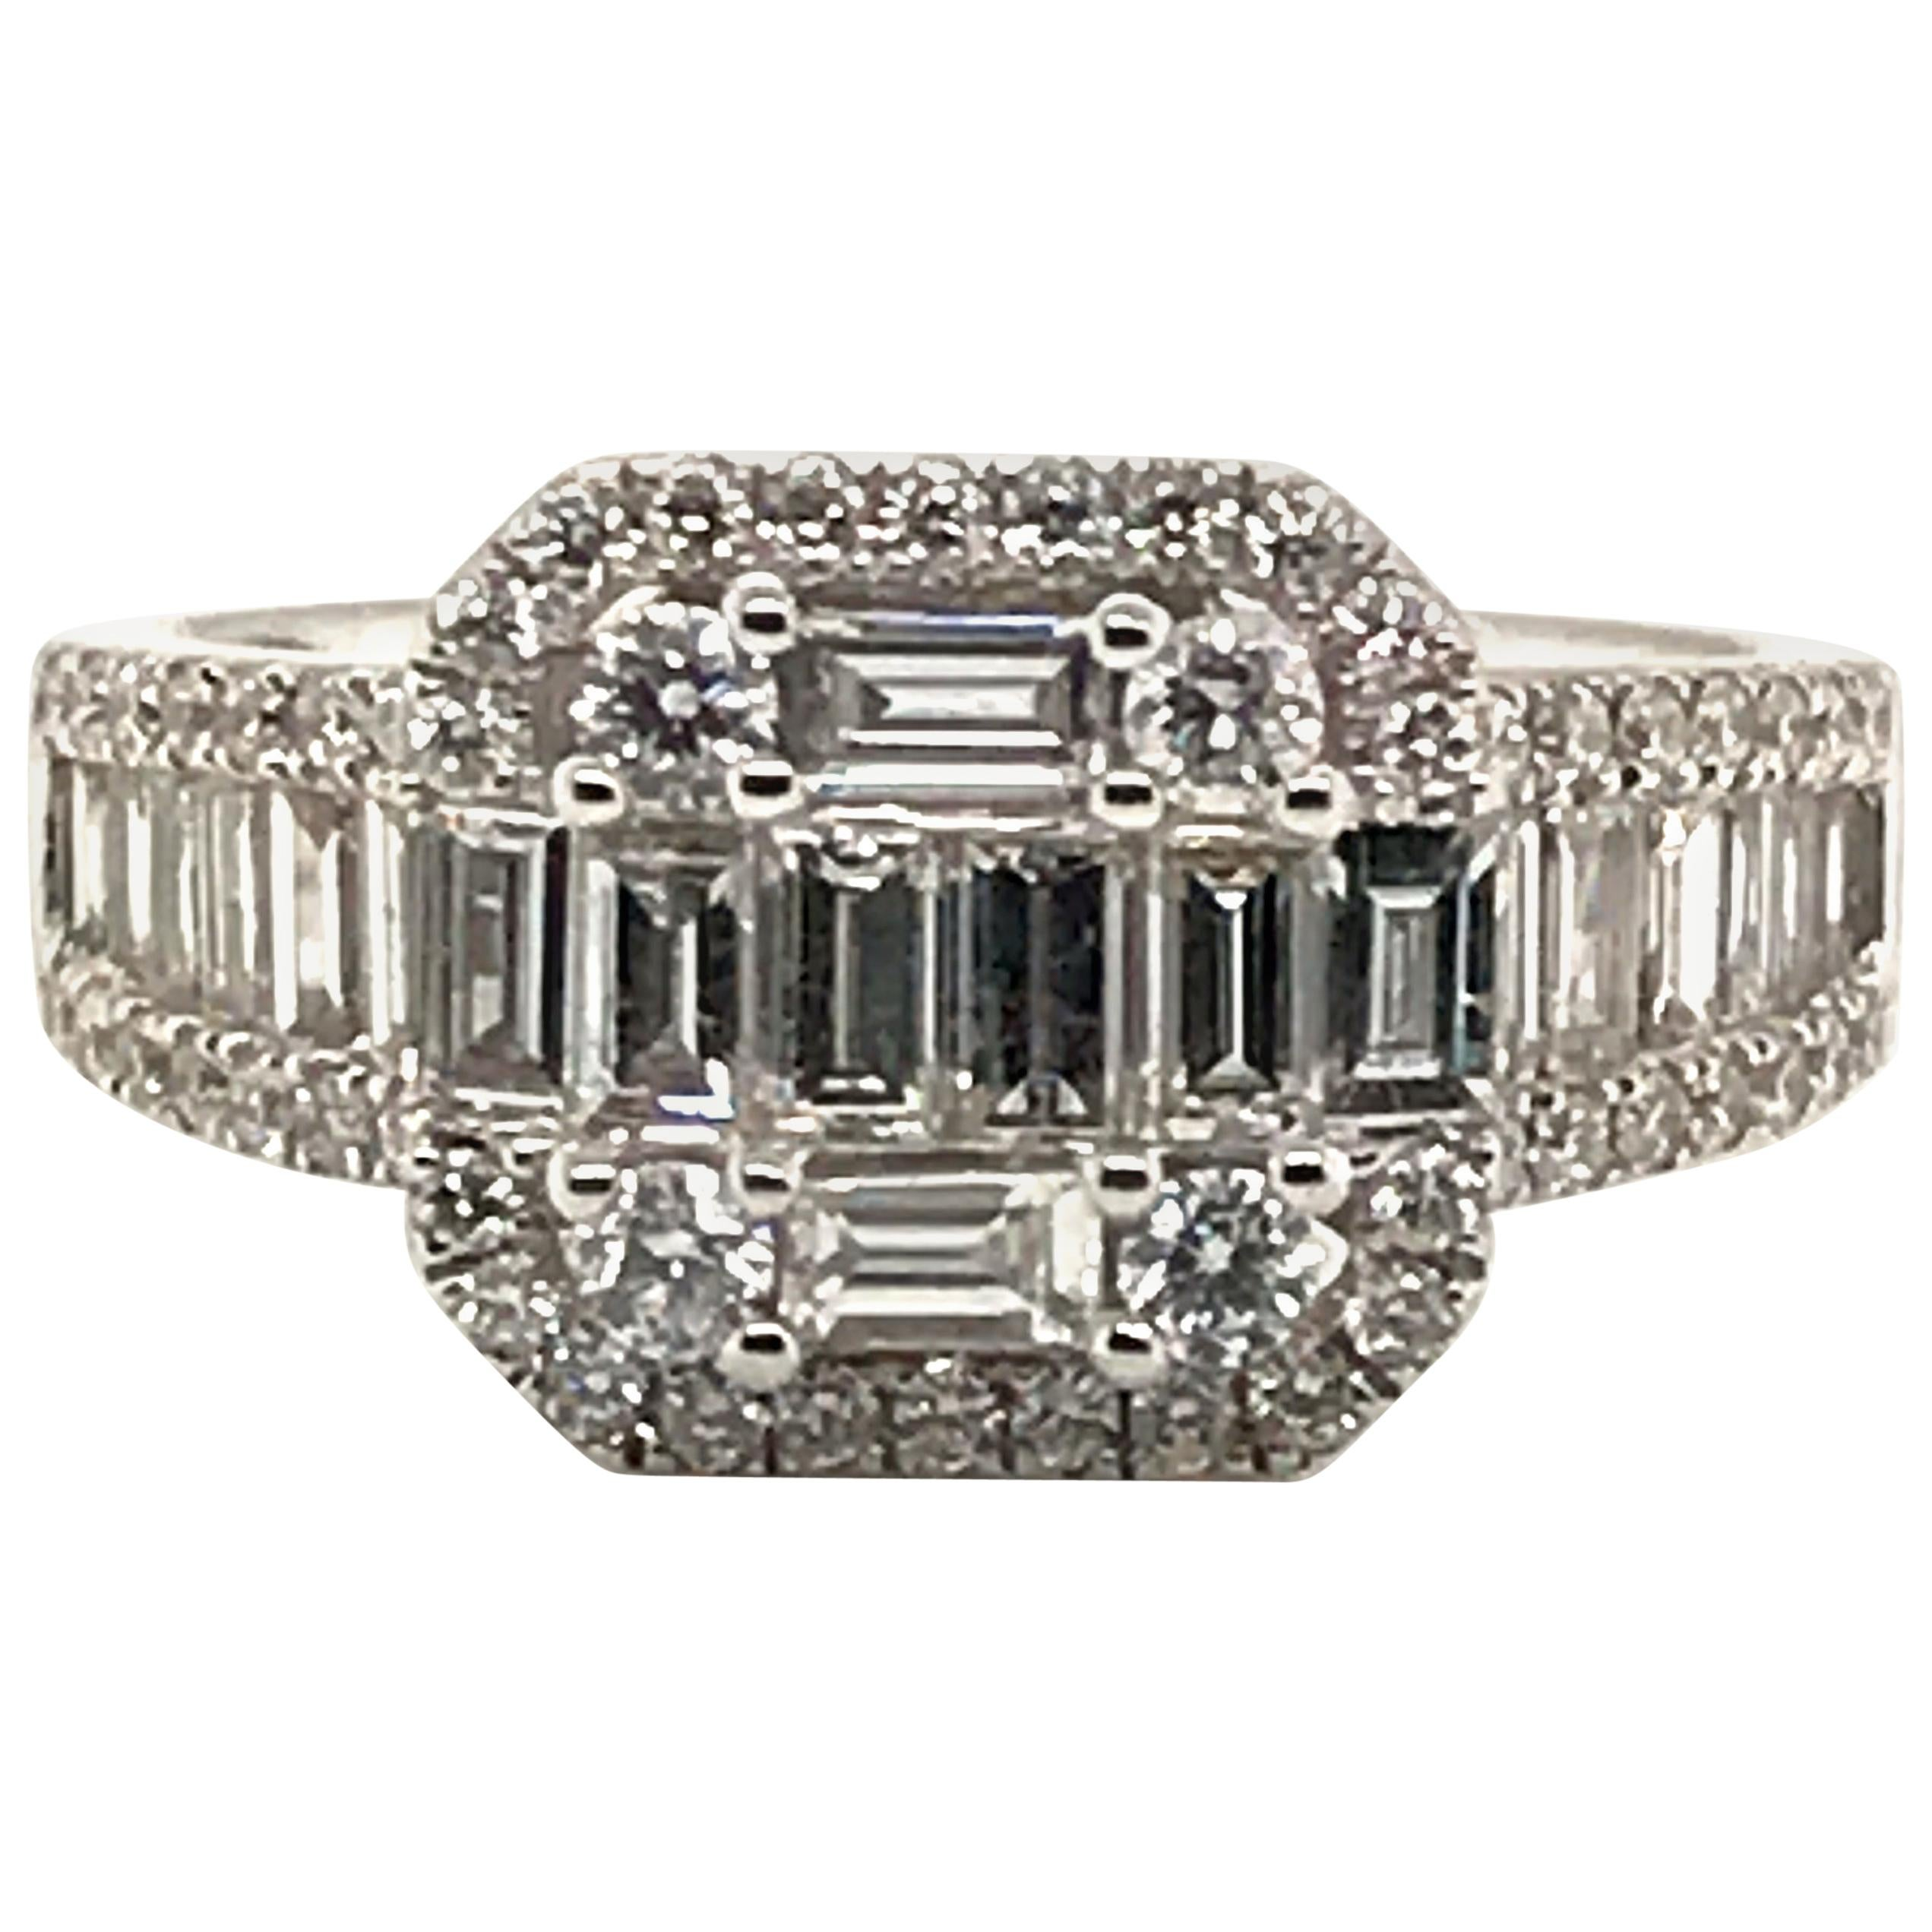 1.51 Carat Baguette and Round Diamond Ring